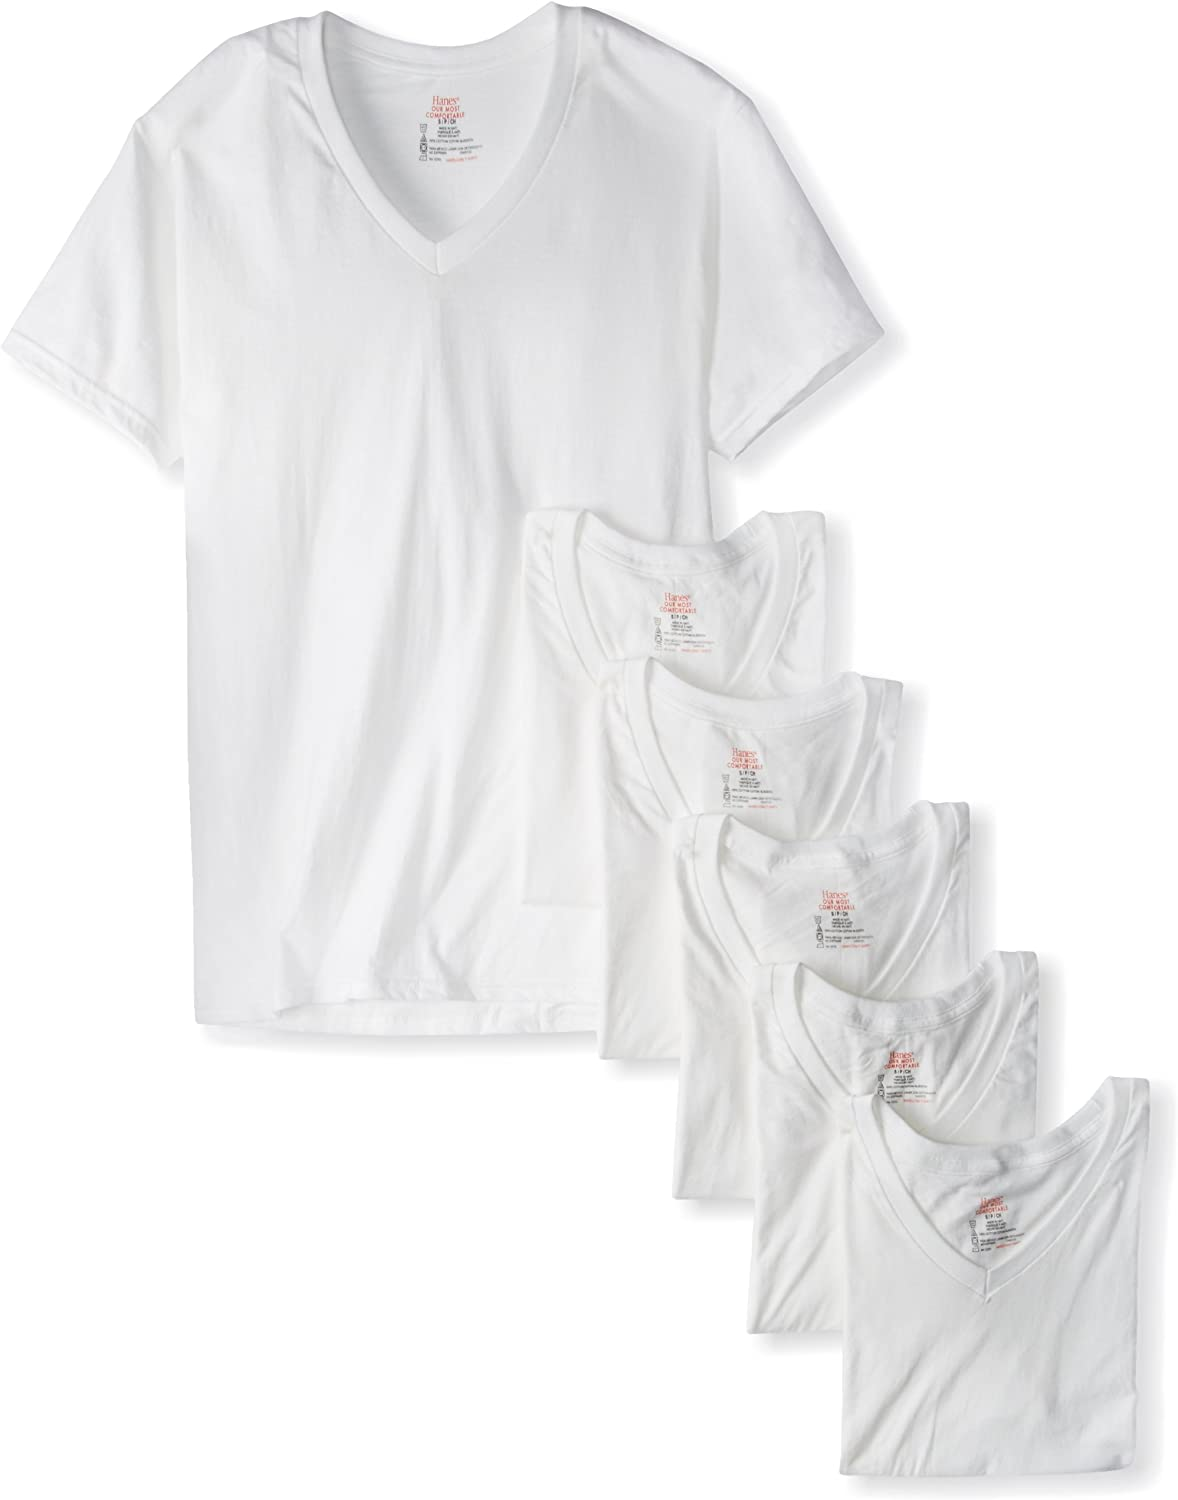 6 Pack 6 X-Large Hanes Men/'s White and Assorted V-Neck T-Shirts White